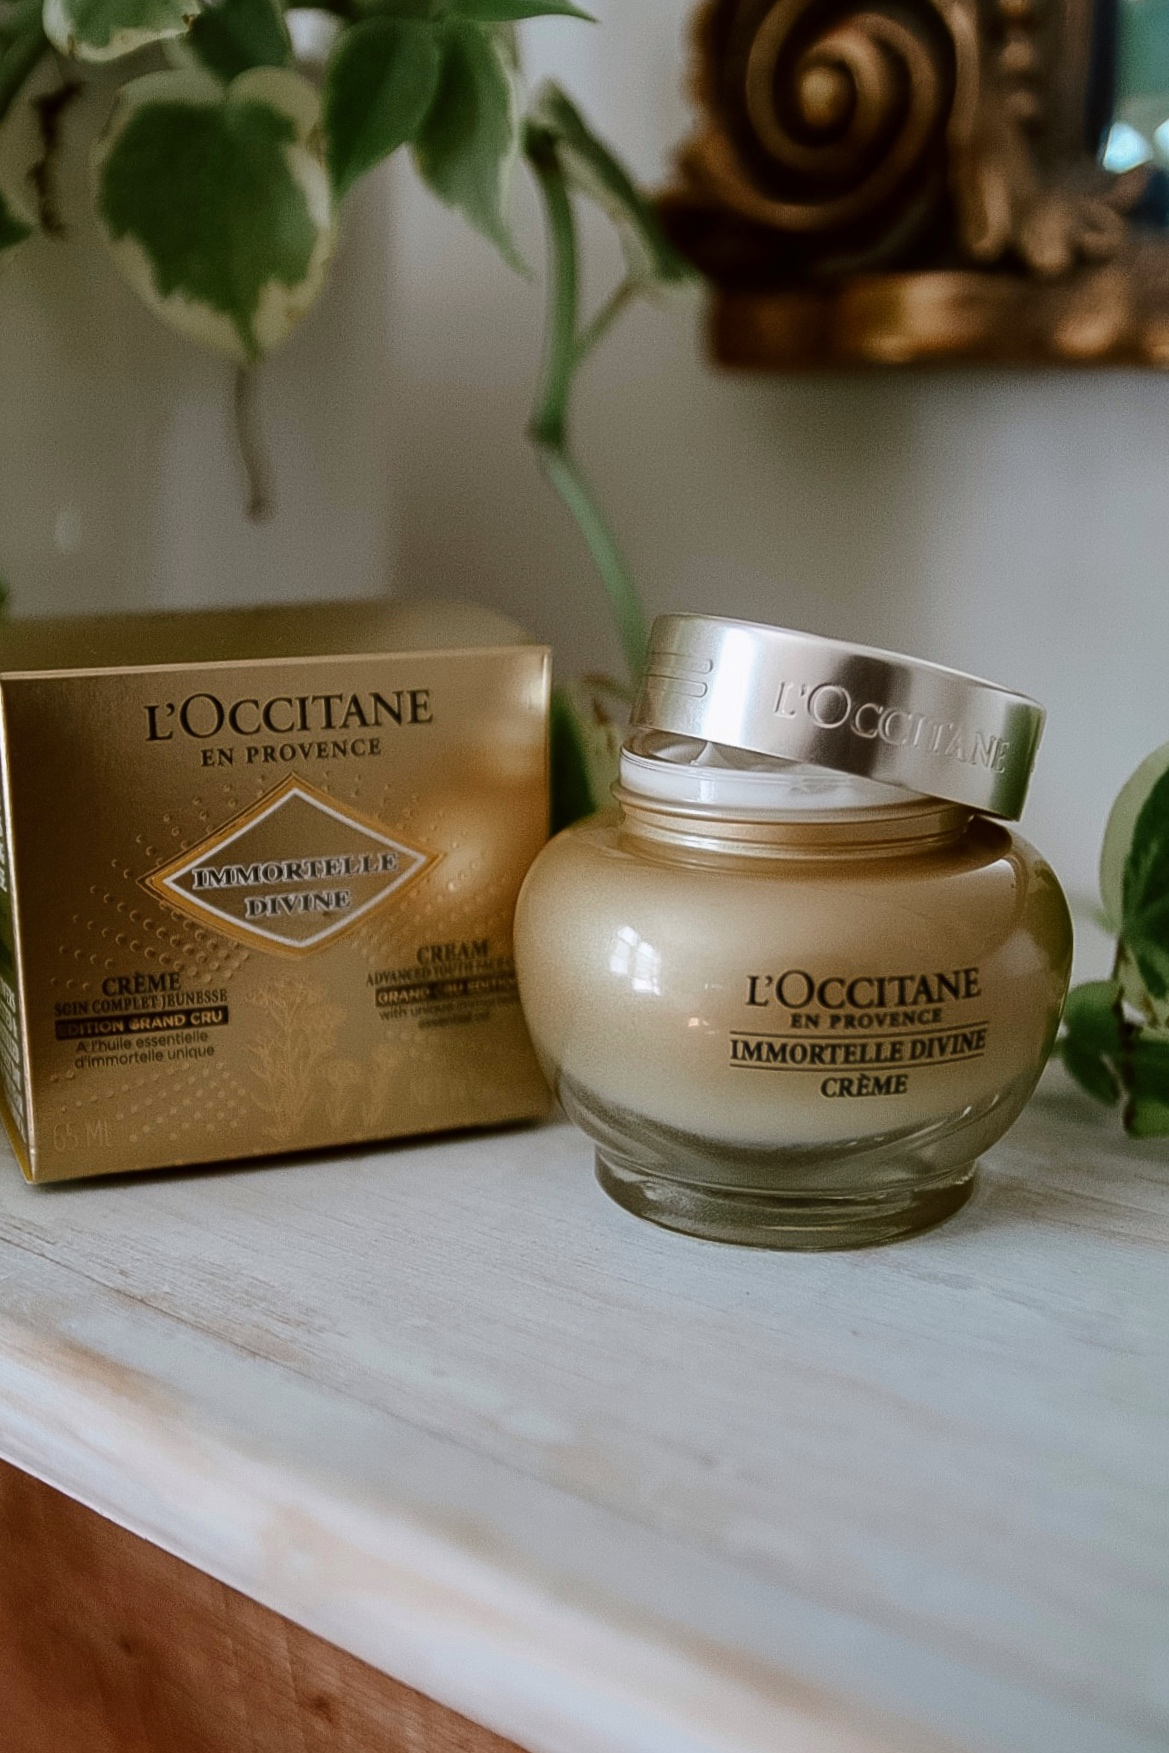 L'OCCITANE product reviews